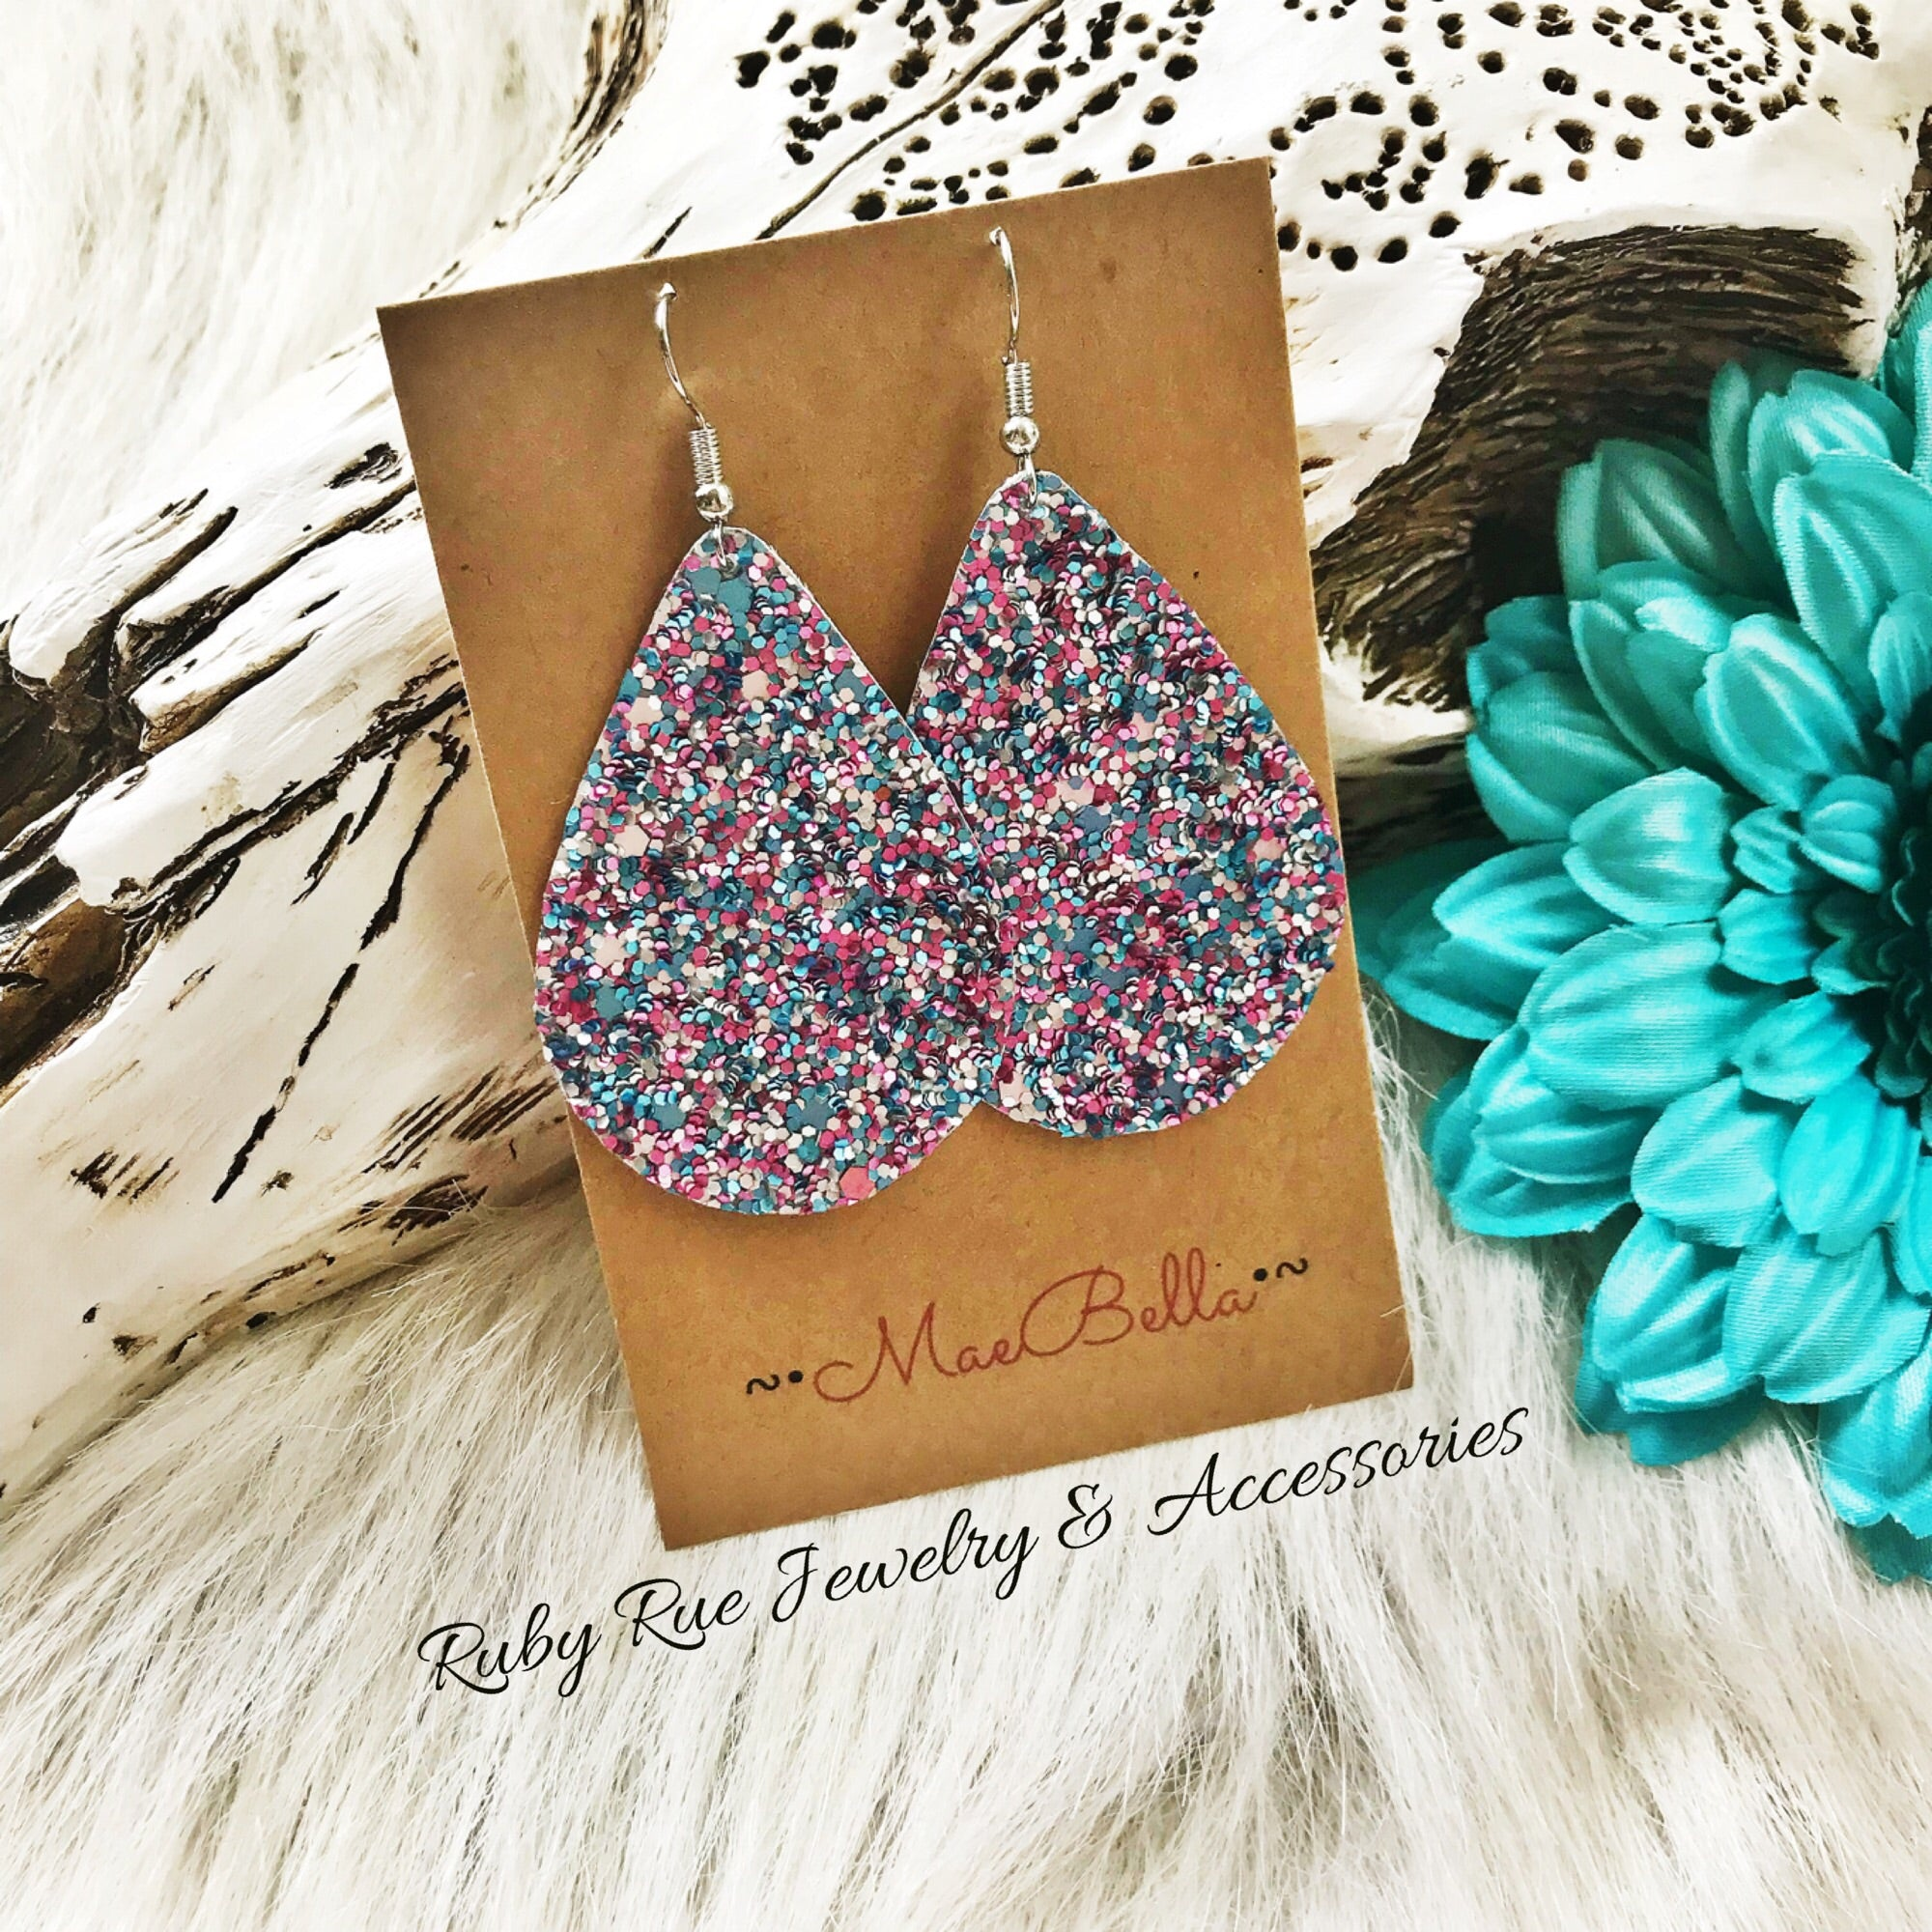 Pinky-Turquoise Glitter Canvas Earrings - Ruby Rue Jewelry & Accessories